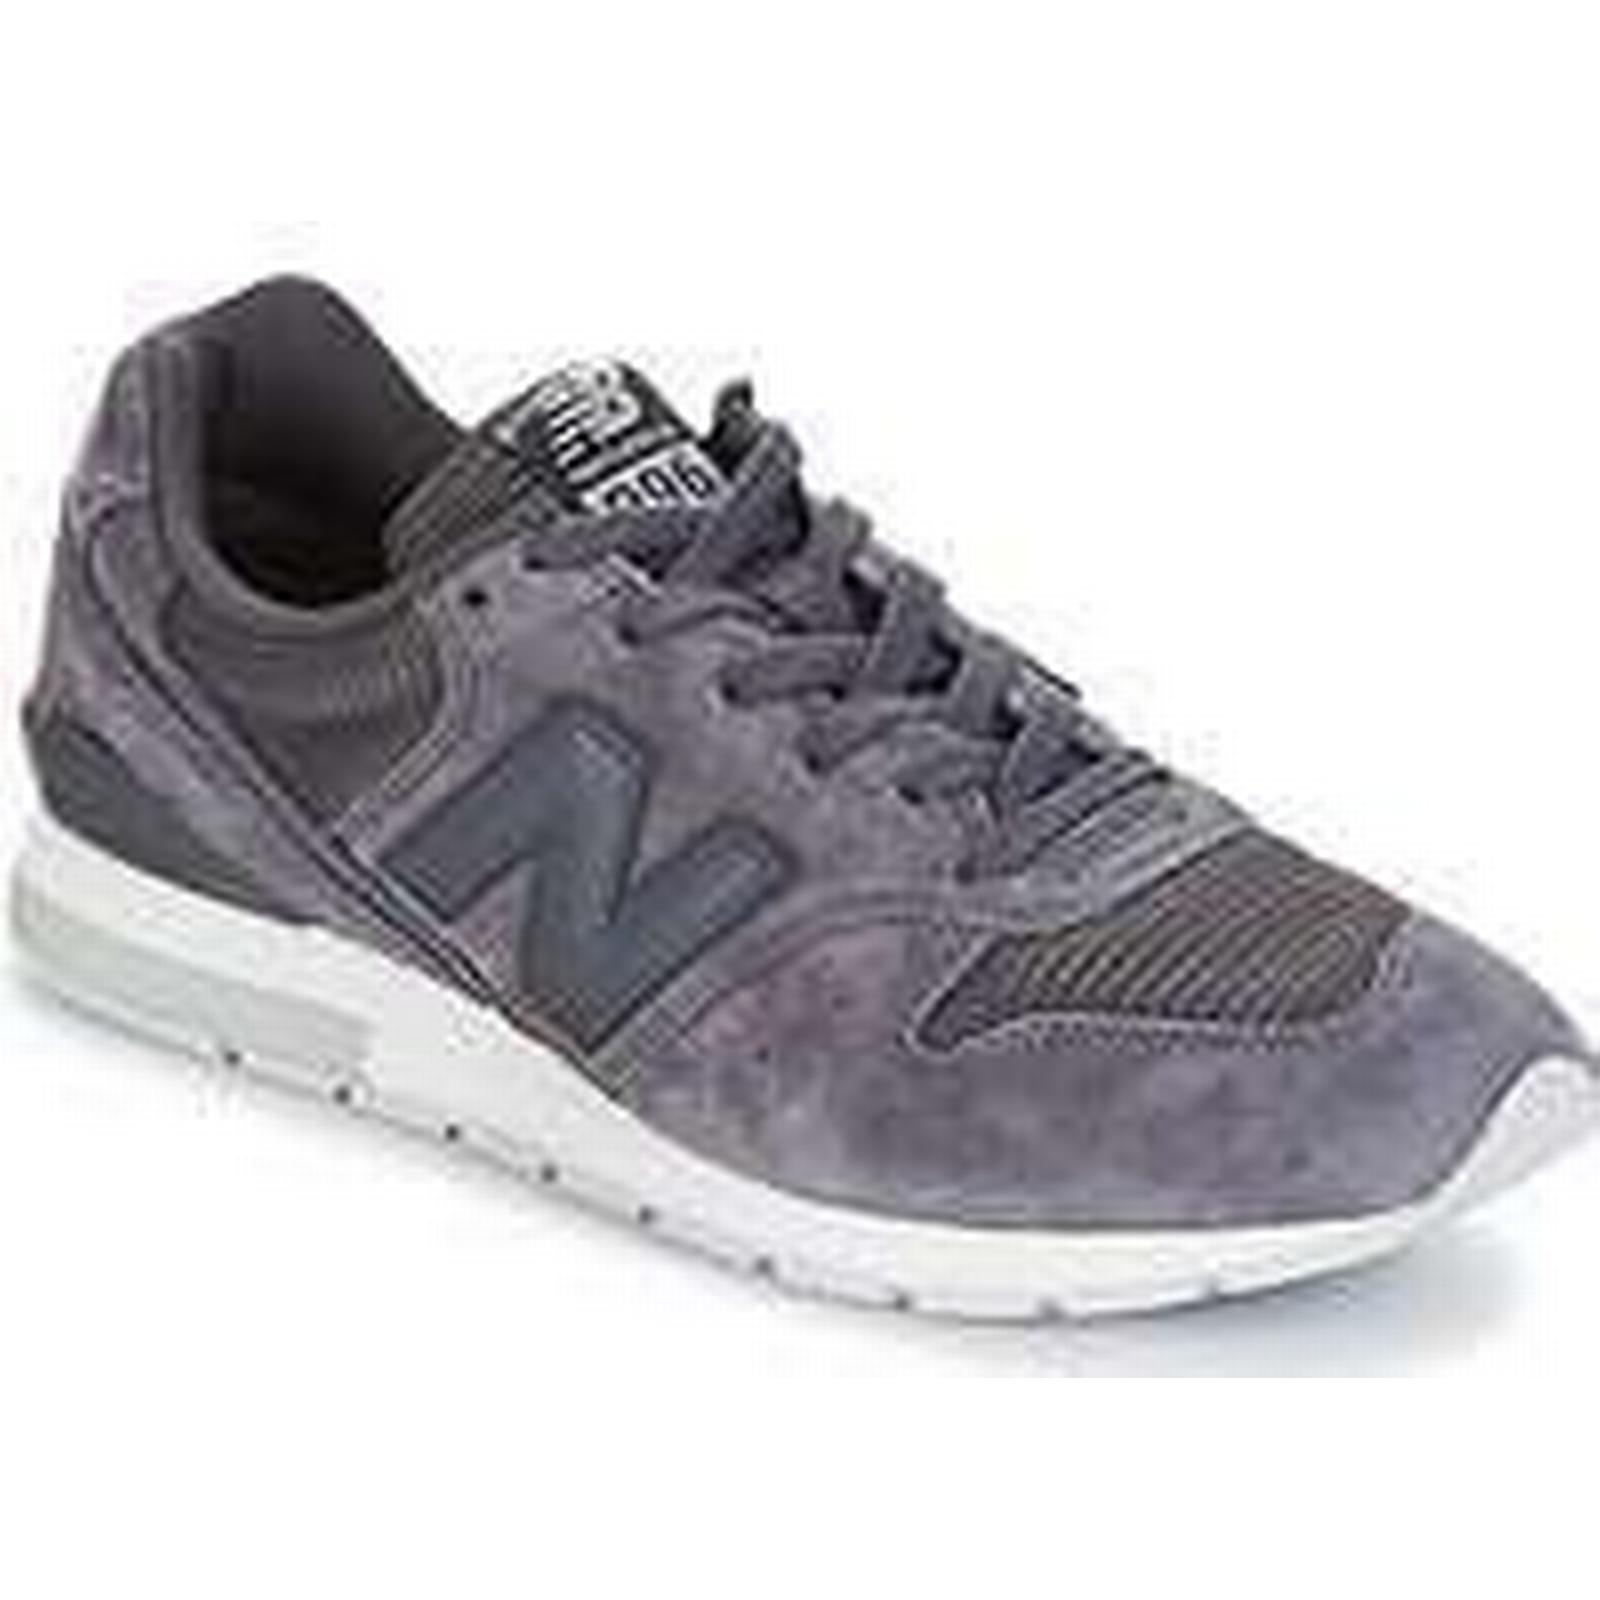 Spartoo.co.uk Shoes New Balance MRL996 men's Shoes Spartoo.co.uk (Trainers) in Beige 9a6268